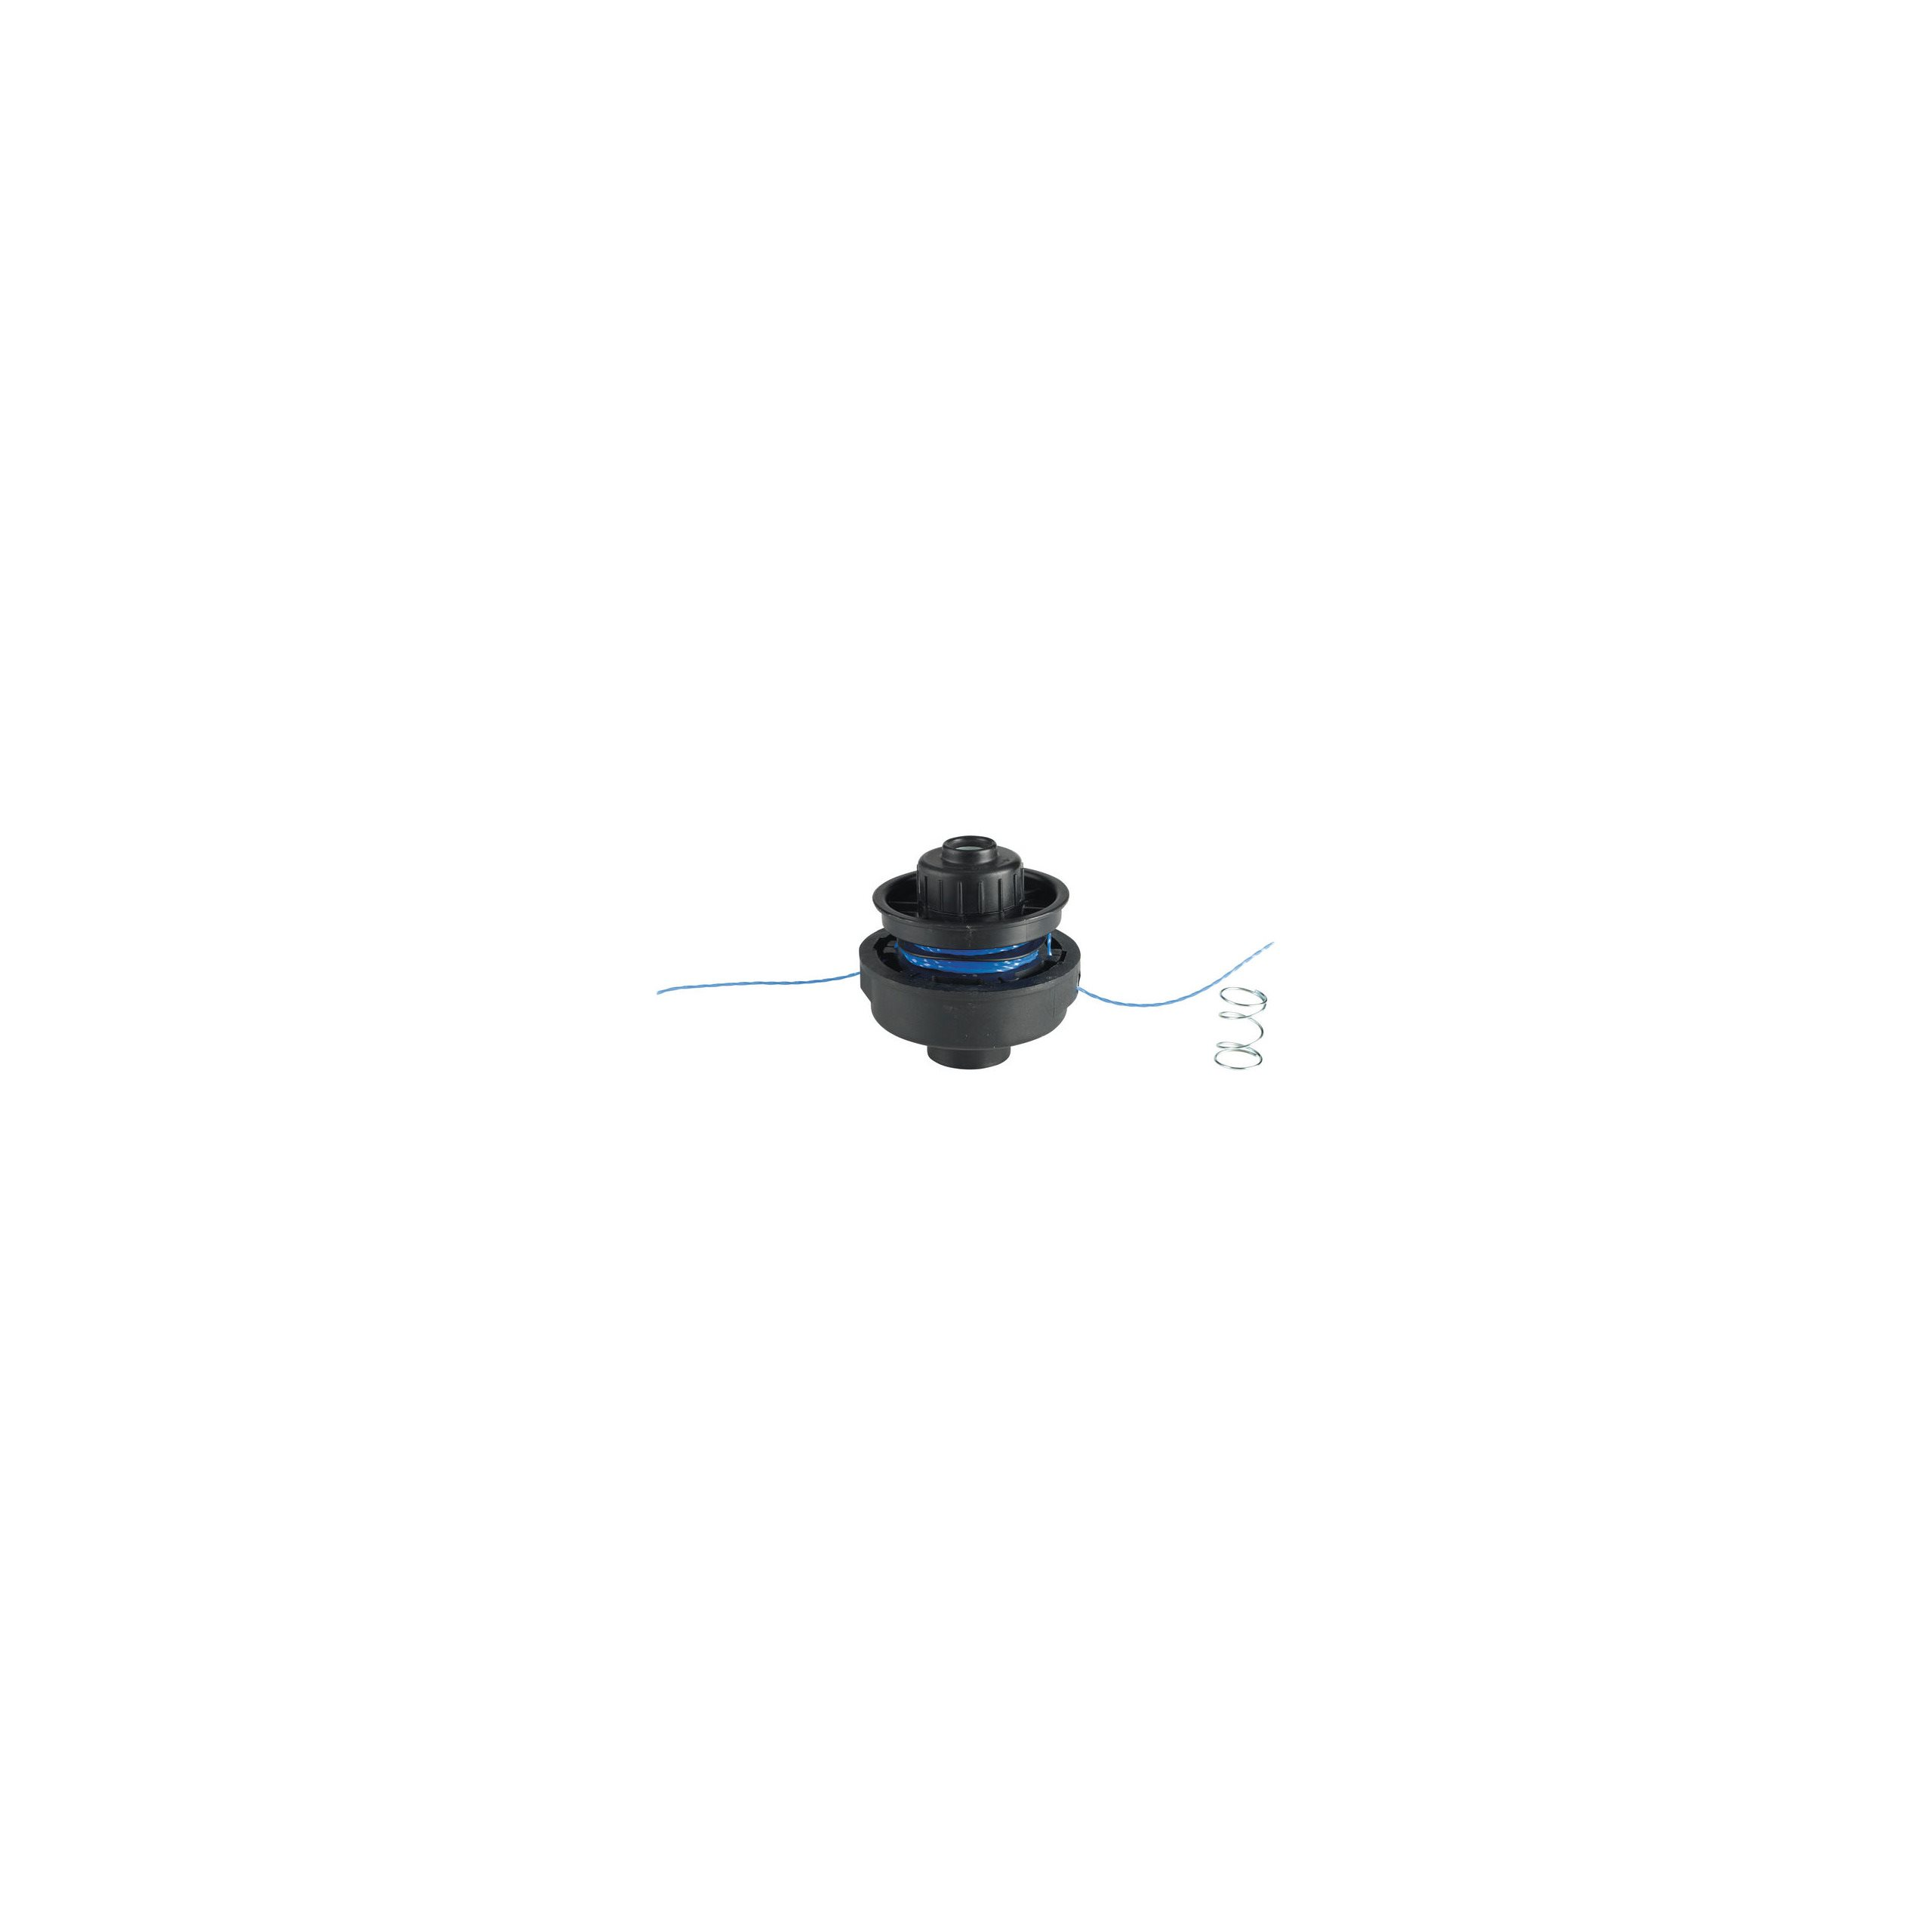 Trimmer Head for Corded Brush Cutters with 1.5mm Line